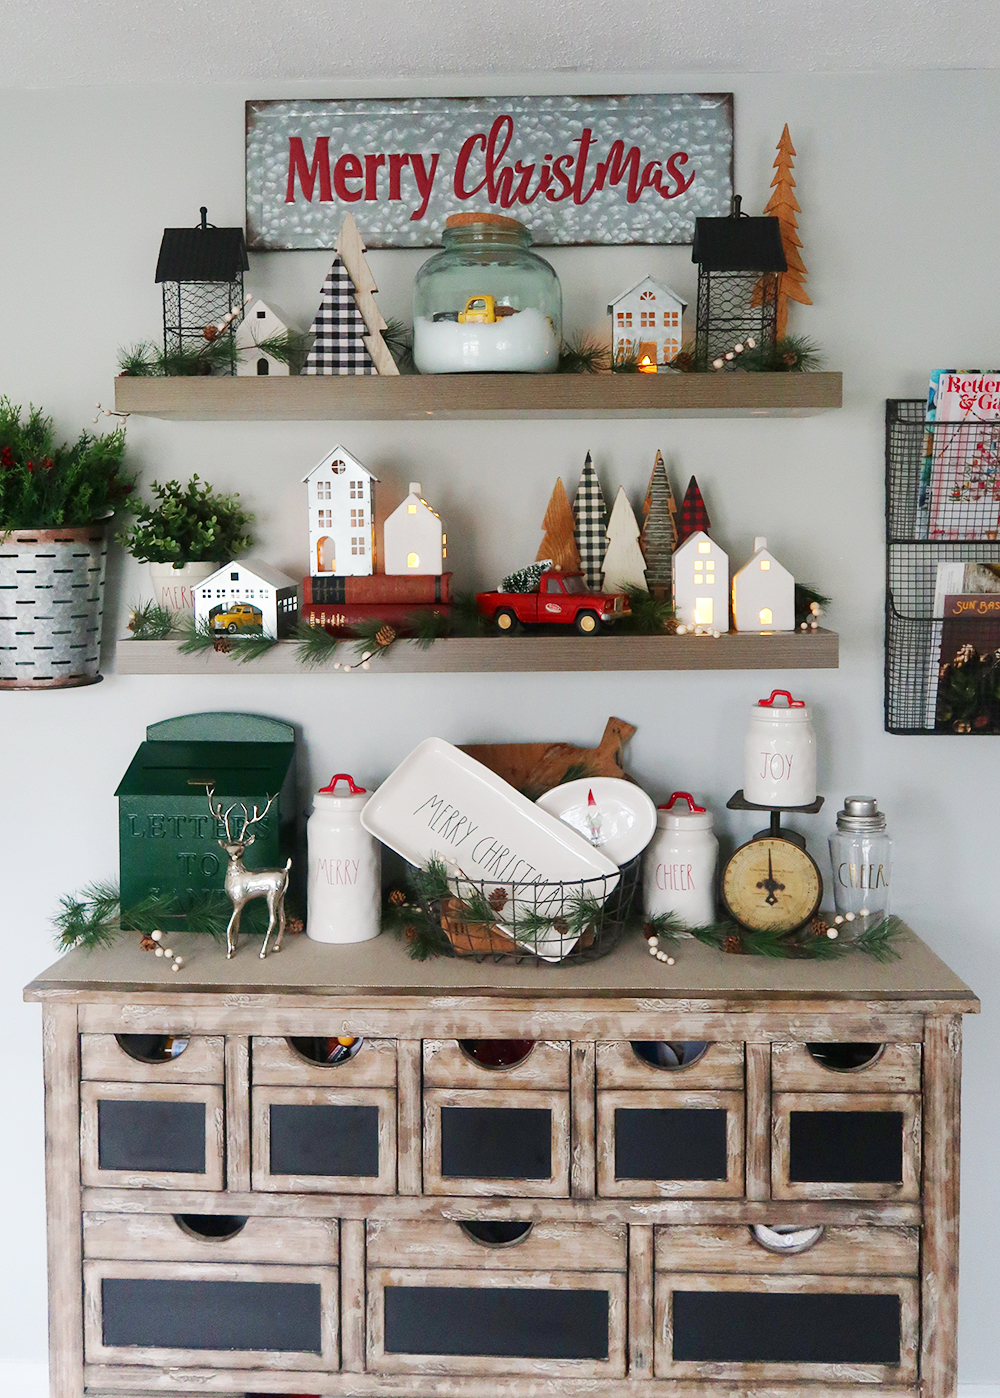 Decorating Floating Shelves For Christmas - Weekend Craft